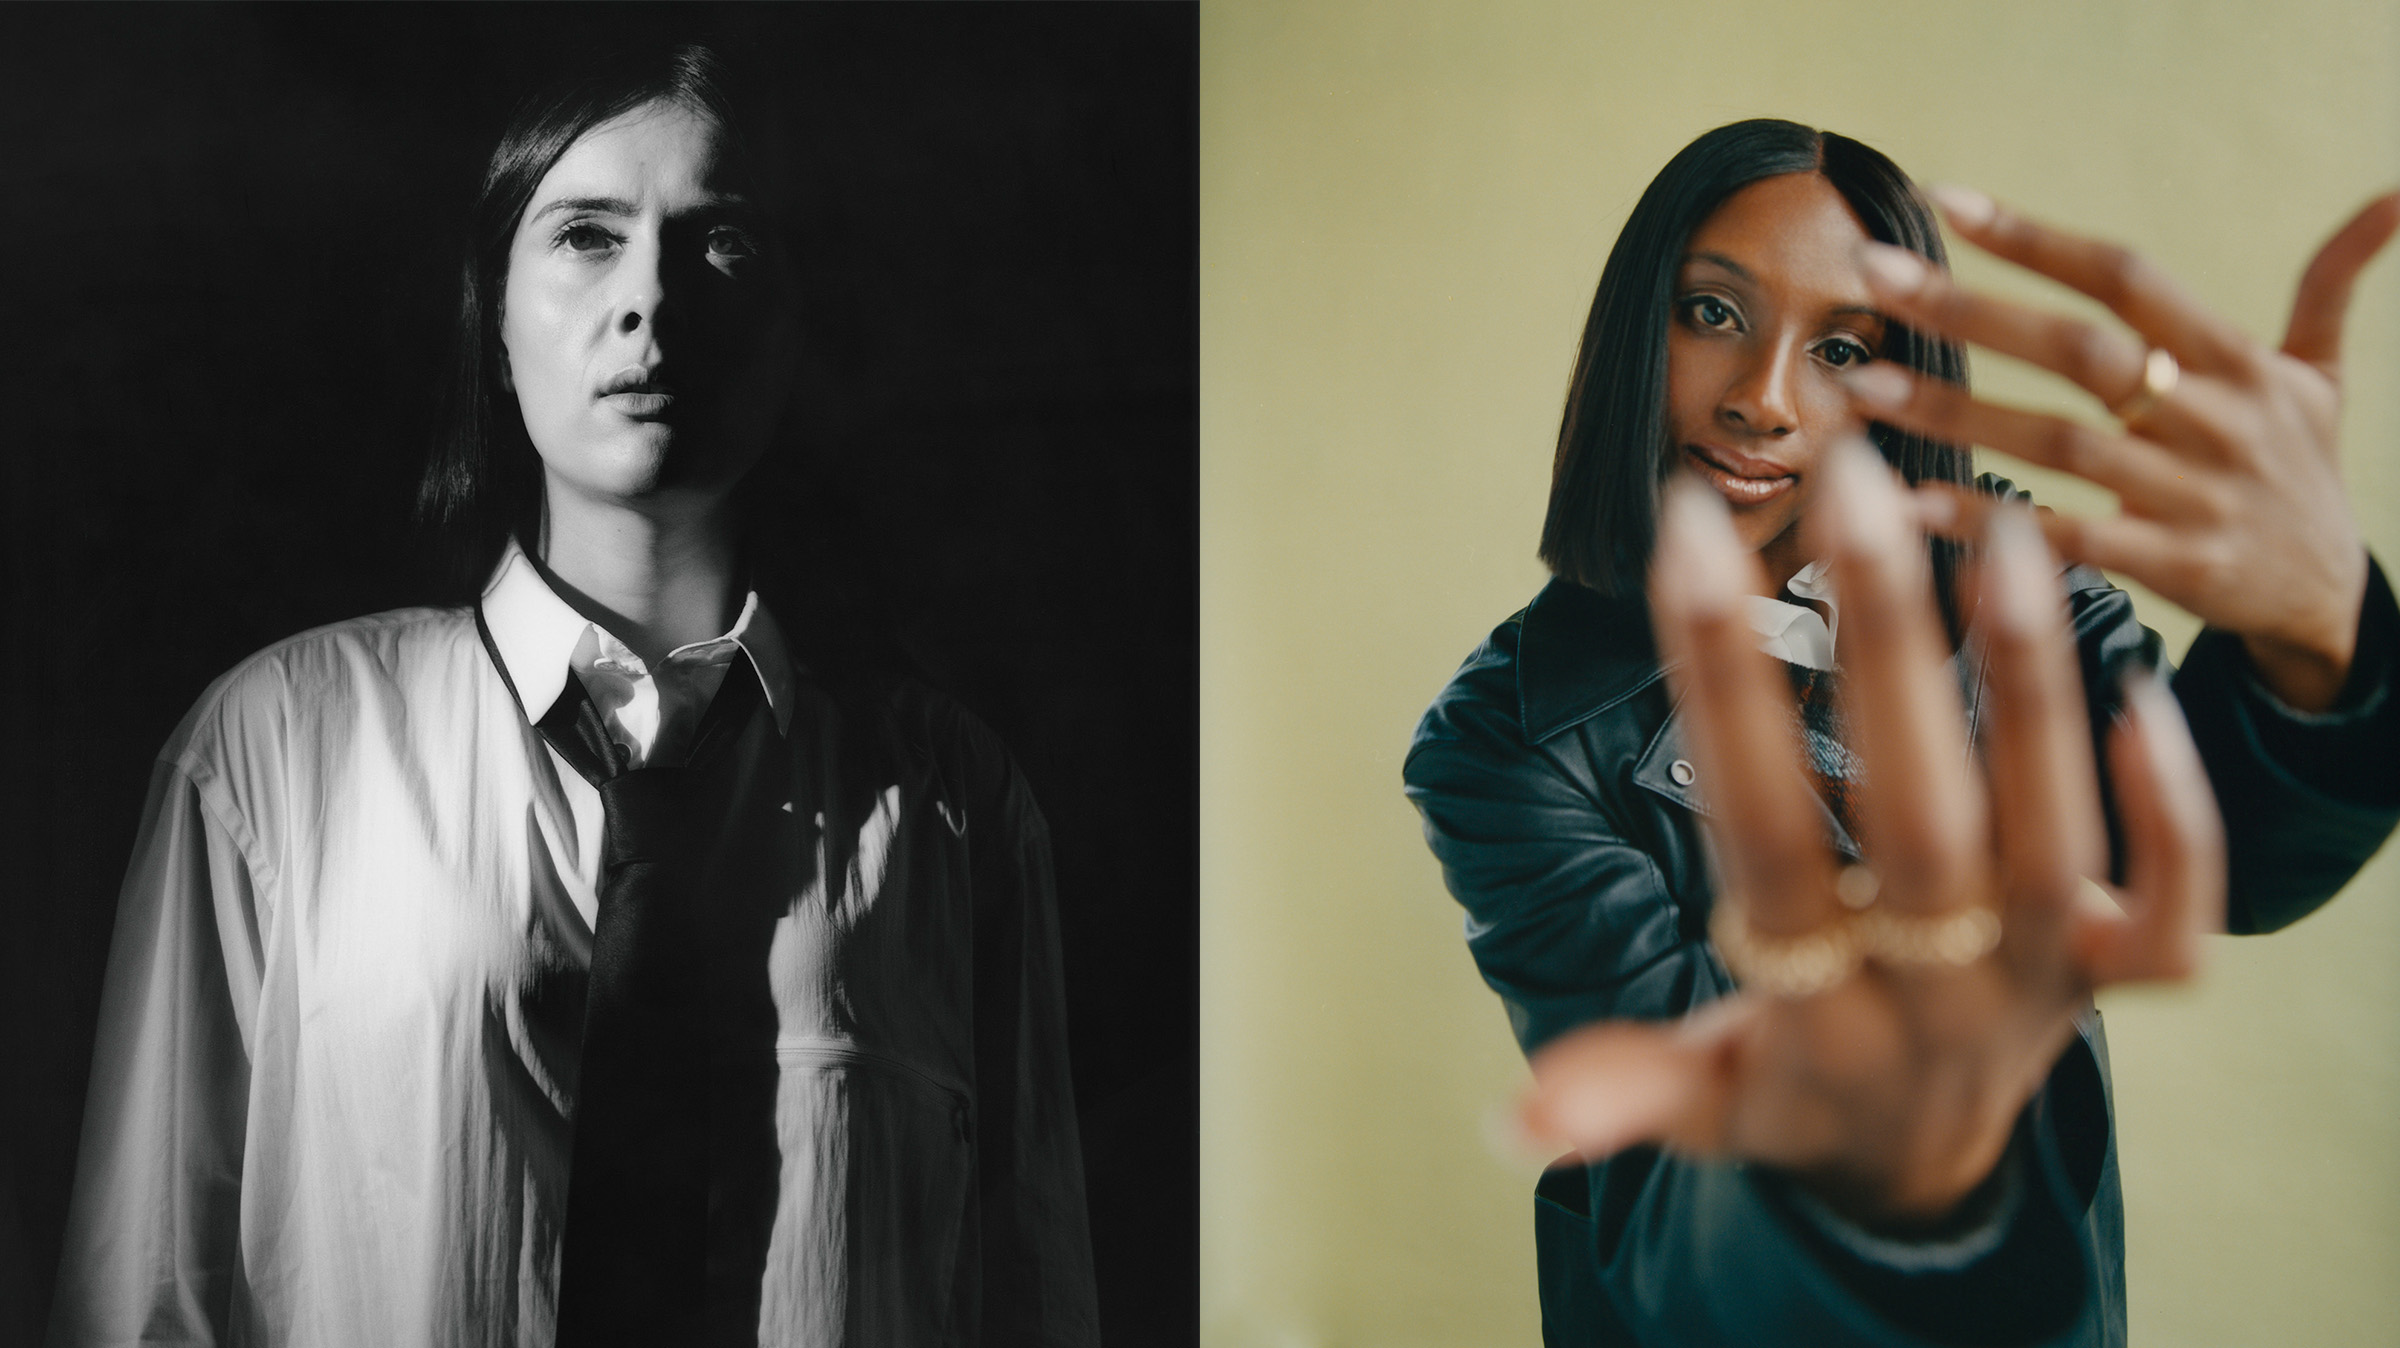 Ziwe Fumudoh and Patti Harrison talk Christian guilt, shitty exes, and Spice Girls